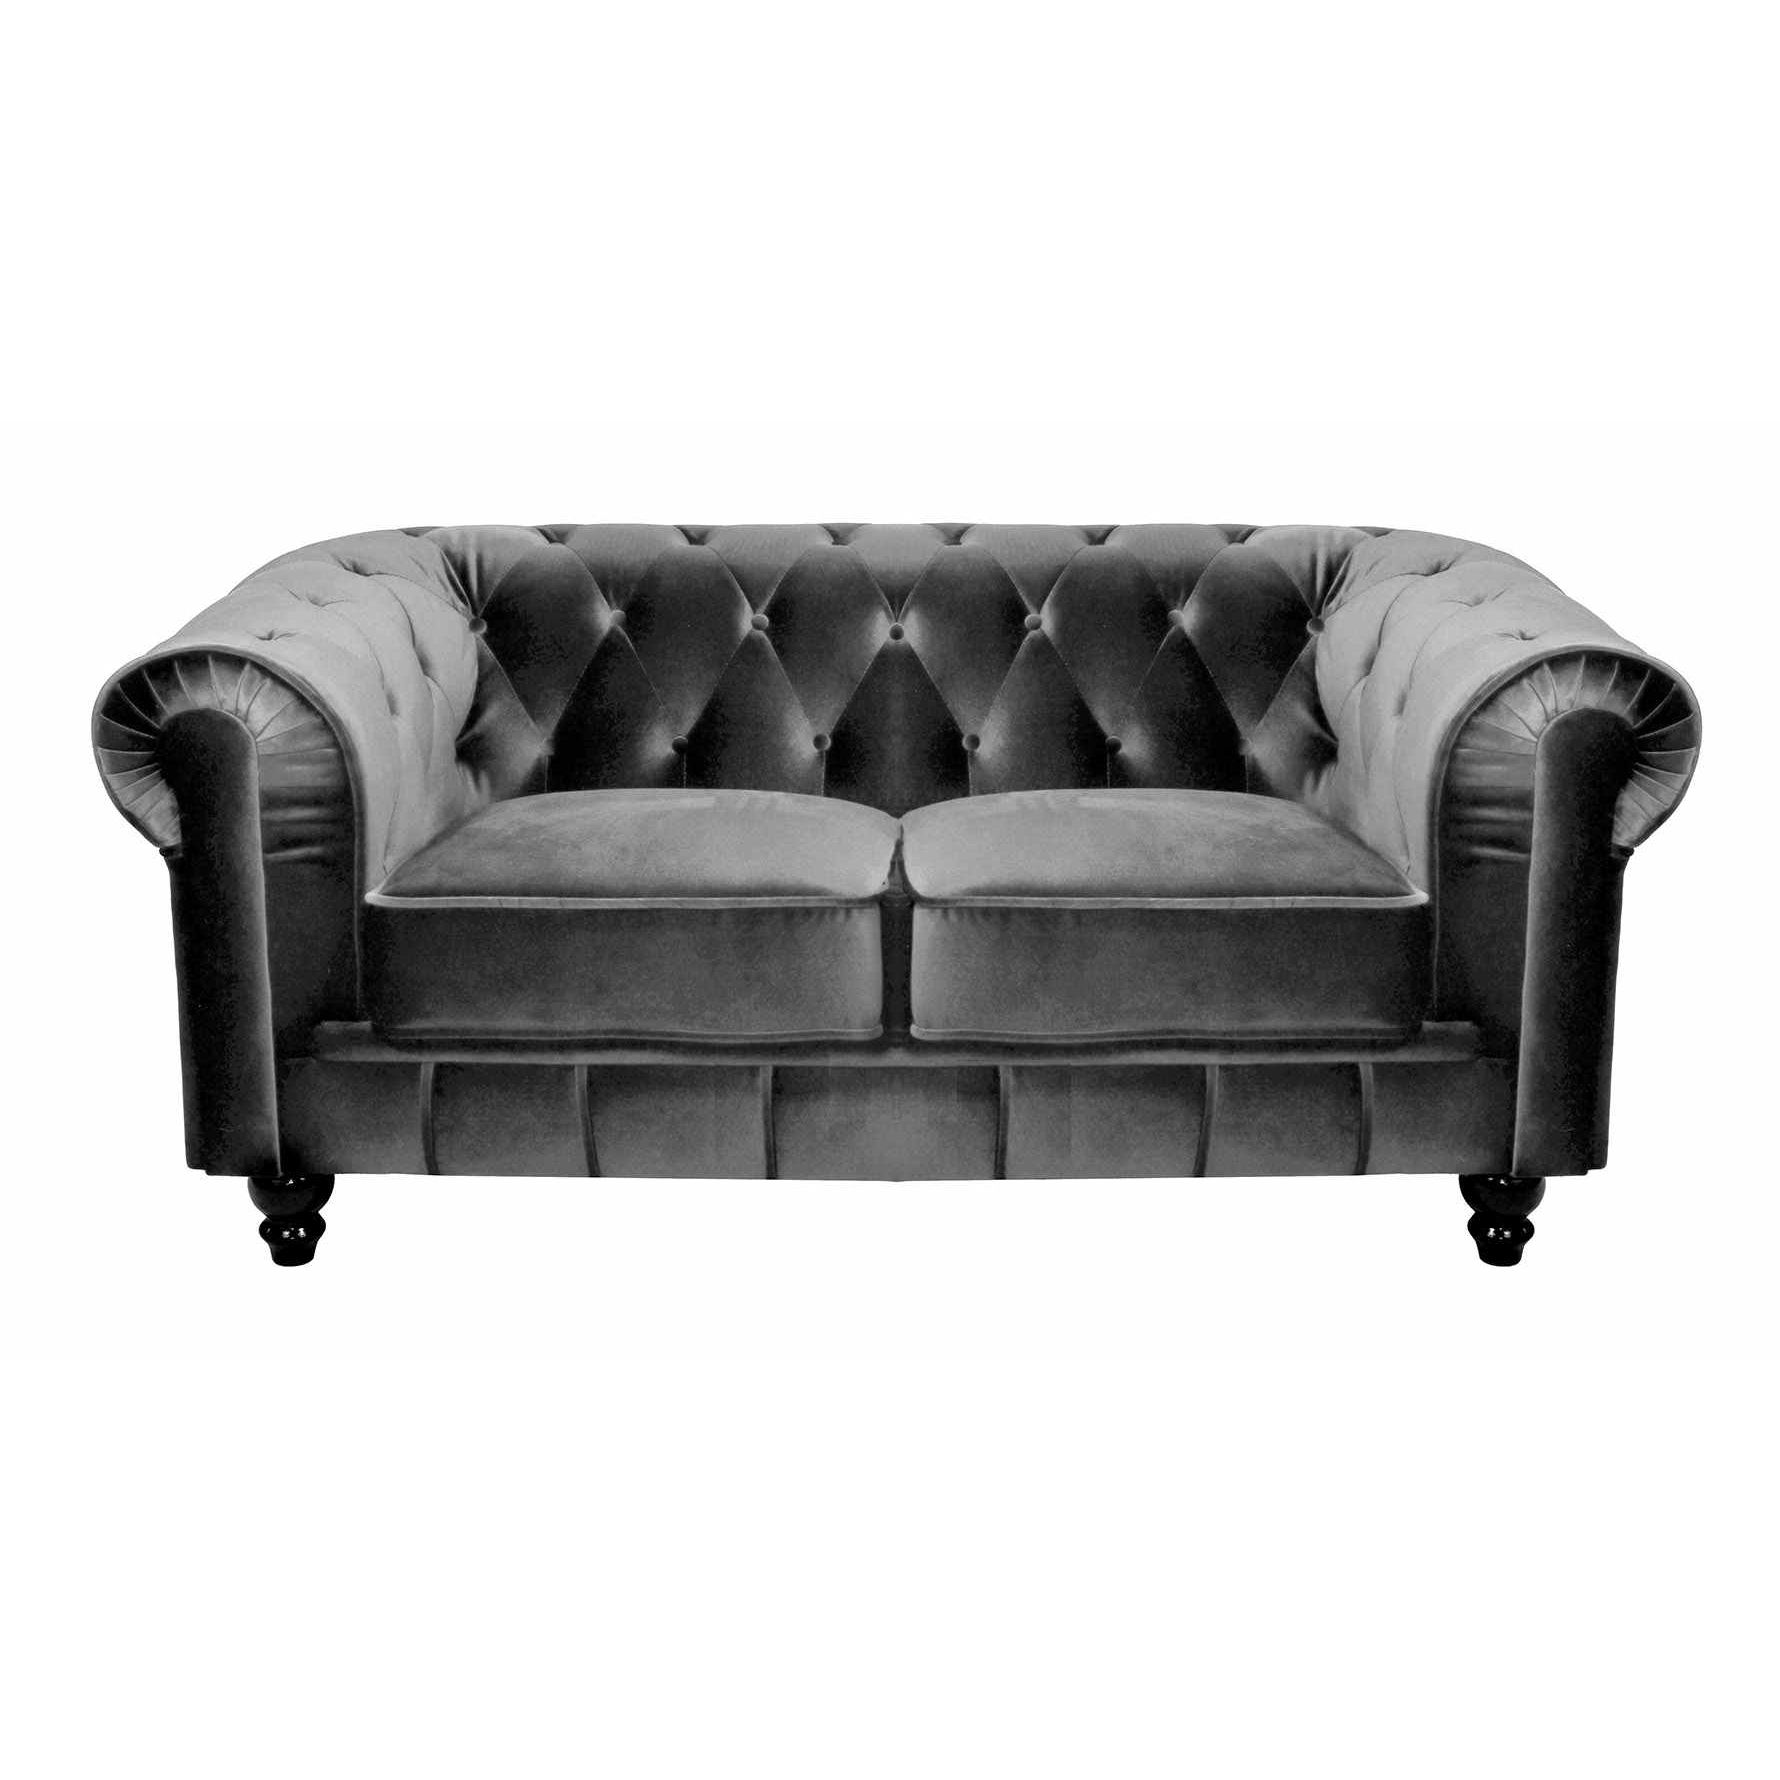 deco in paris canape 2 places velours gris chesterfield can chester 2p velours gris. Black Bedroom Furniture Sets. Home Design Ideas